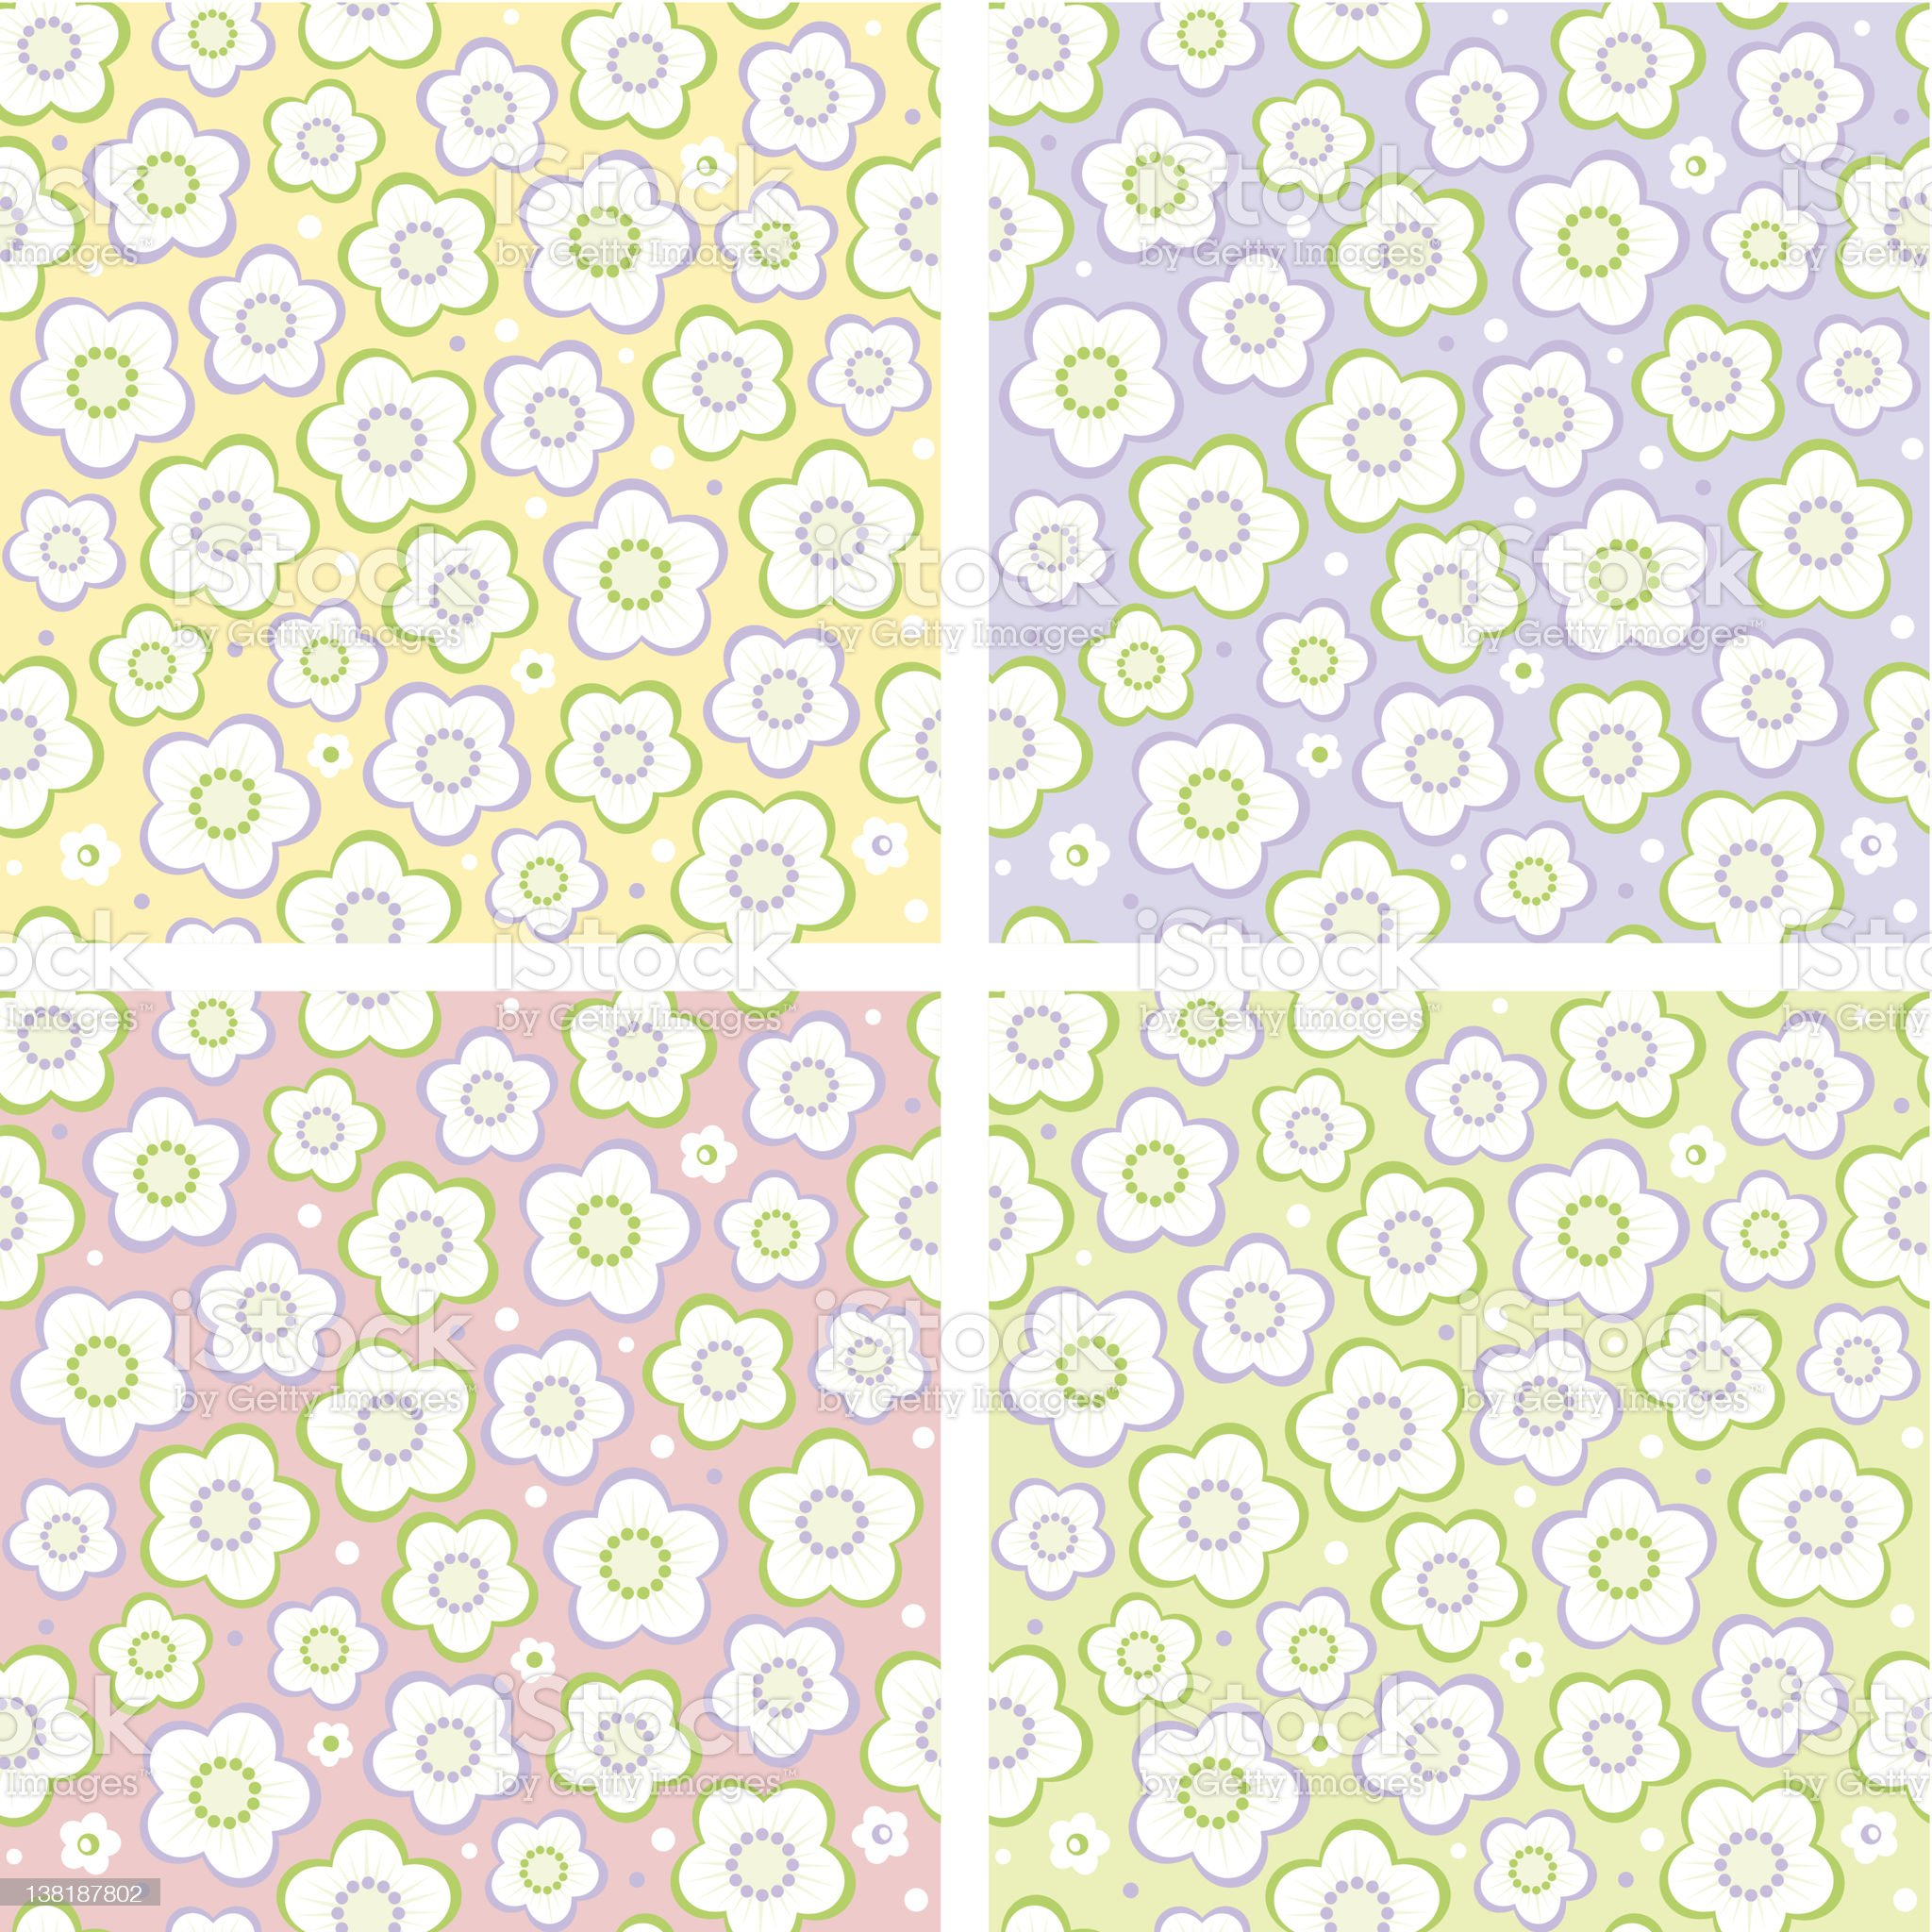 Seamless spring floral patterns royalty-free stock vector art